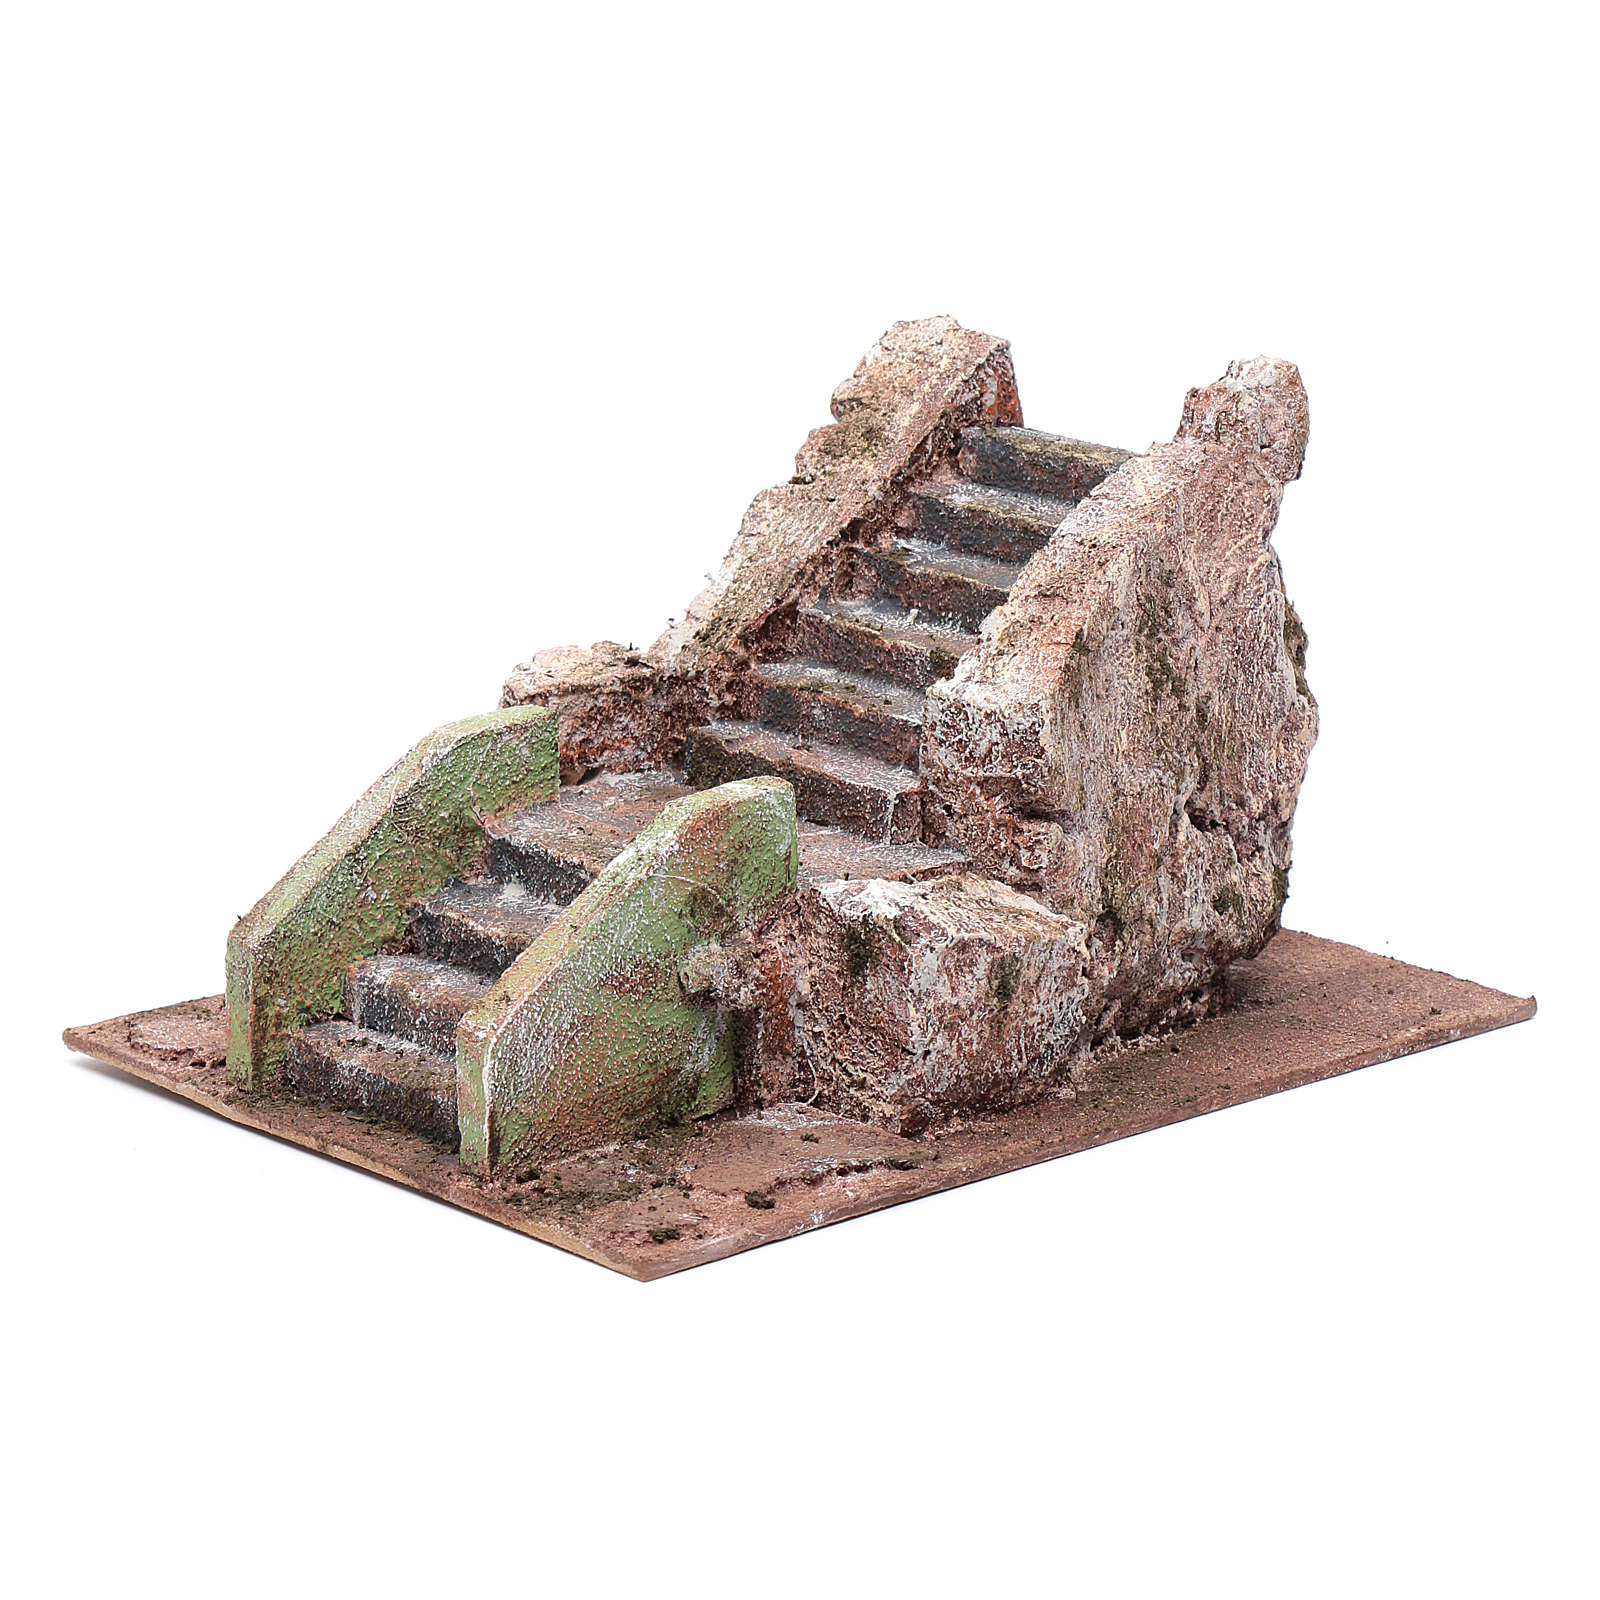 Little ancient nativity scene staircase 10x15x20 cm 4